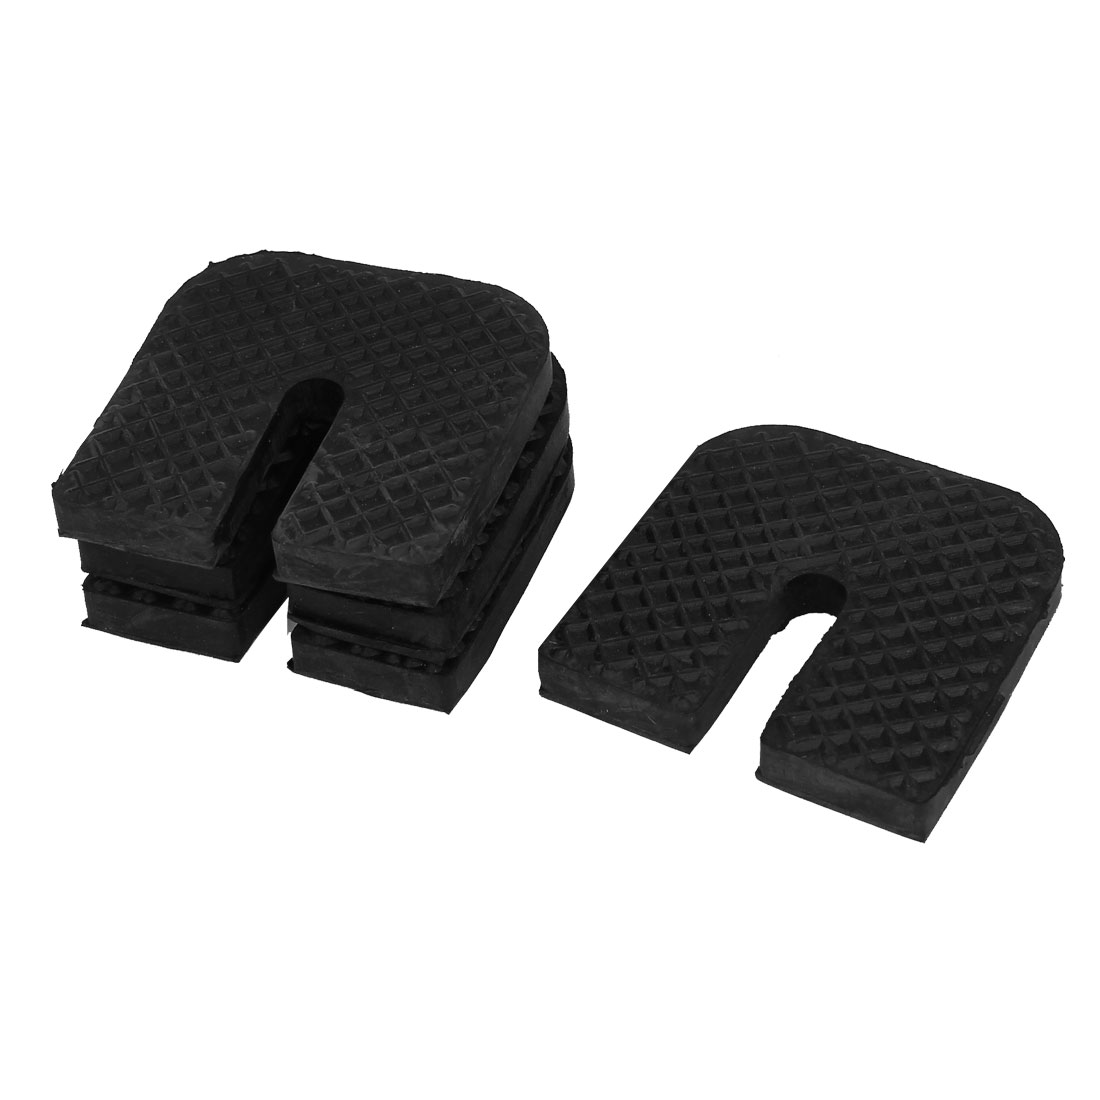 Black Rubber U Design Furniture Table Chair Foot Protector Pads 4pcs